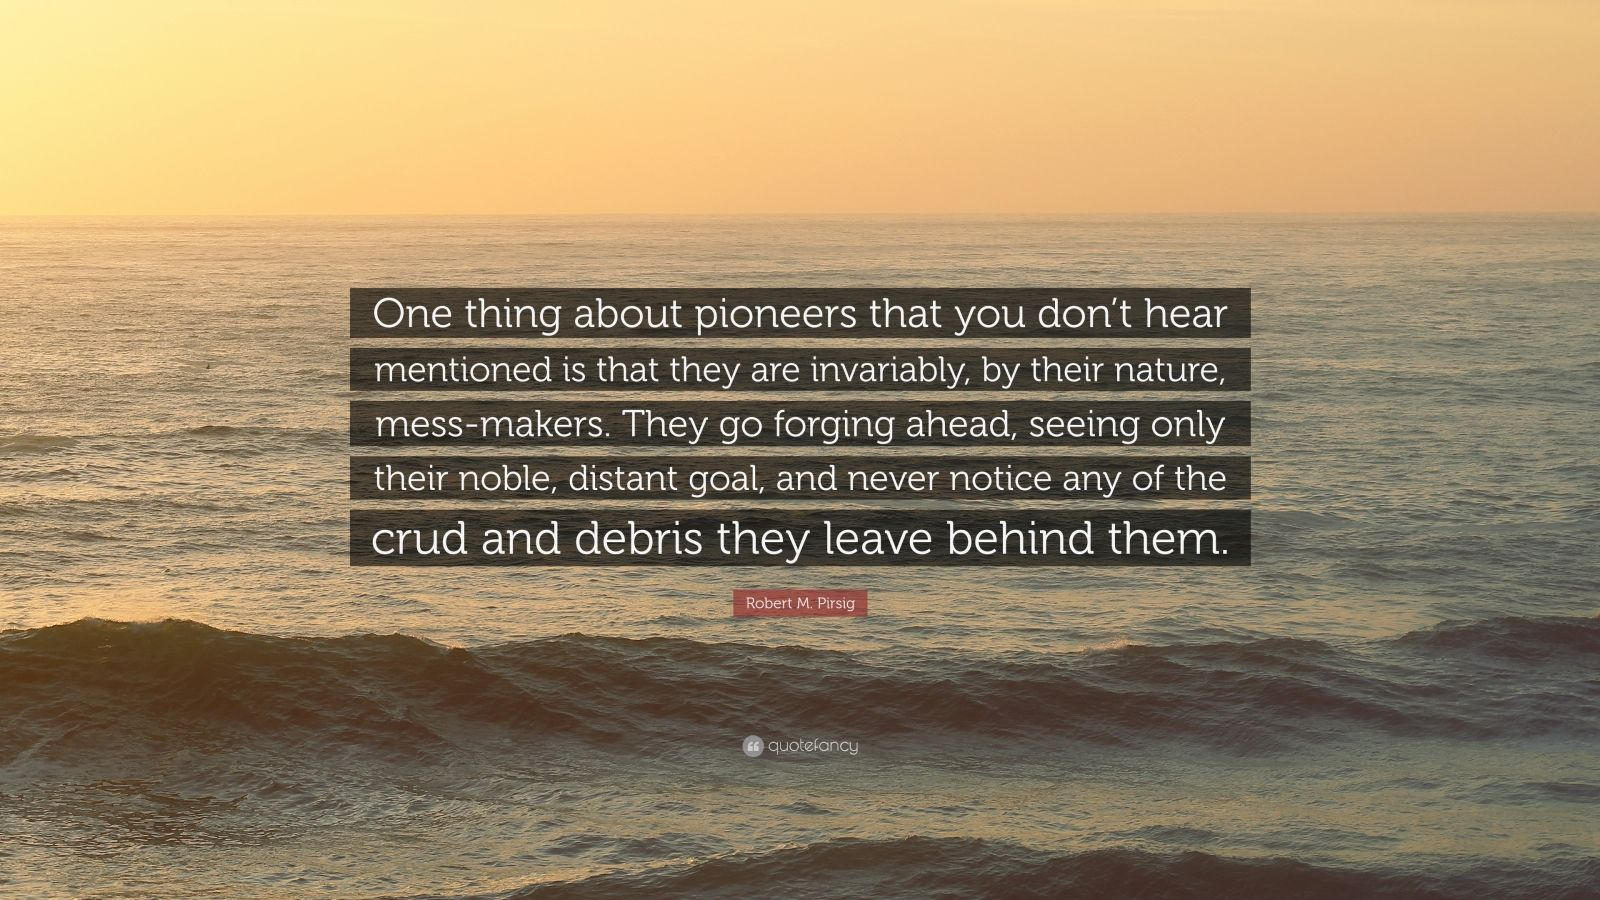 """Robert M. Pirsig Quote: """"One thing about pioneers that you don't hear mentioned is that they are invariably, by their nature, mess-makers. They go forging ahead, seeing only their noble, distant goal, and never notice any of the crud and debris they leave behind them."""""""